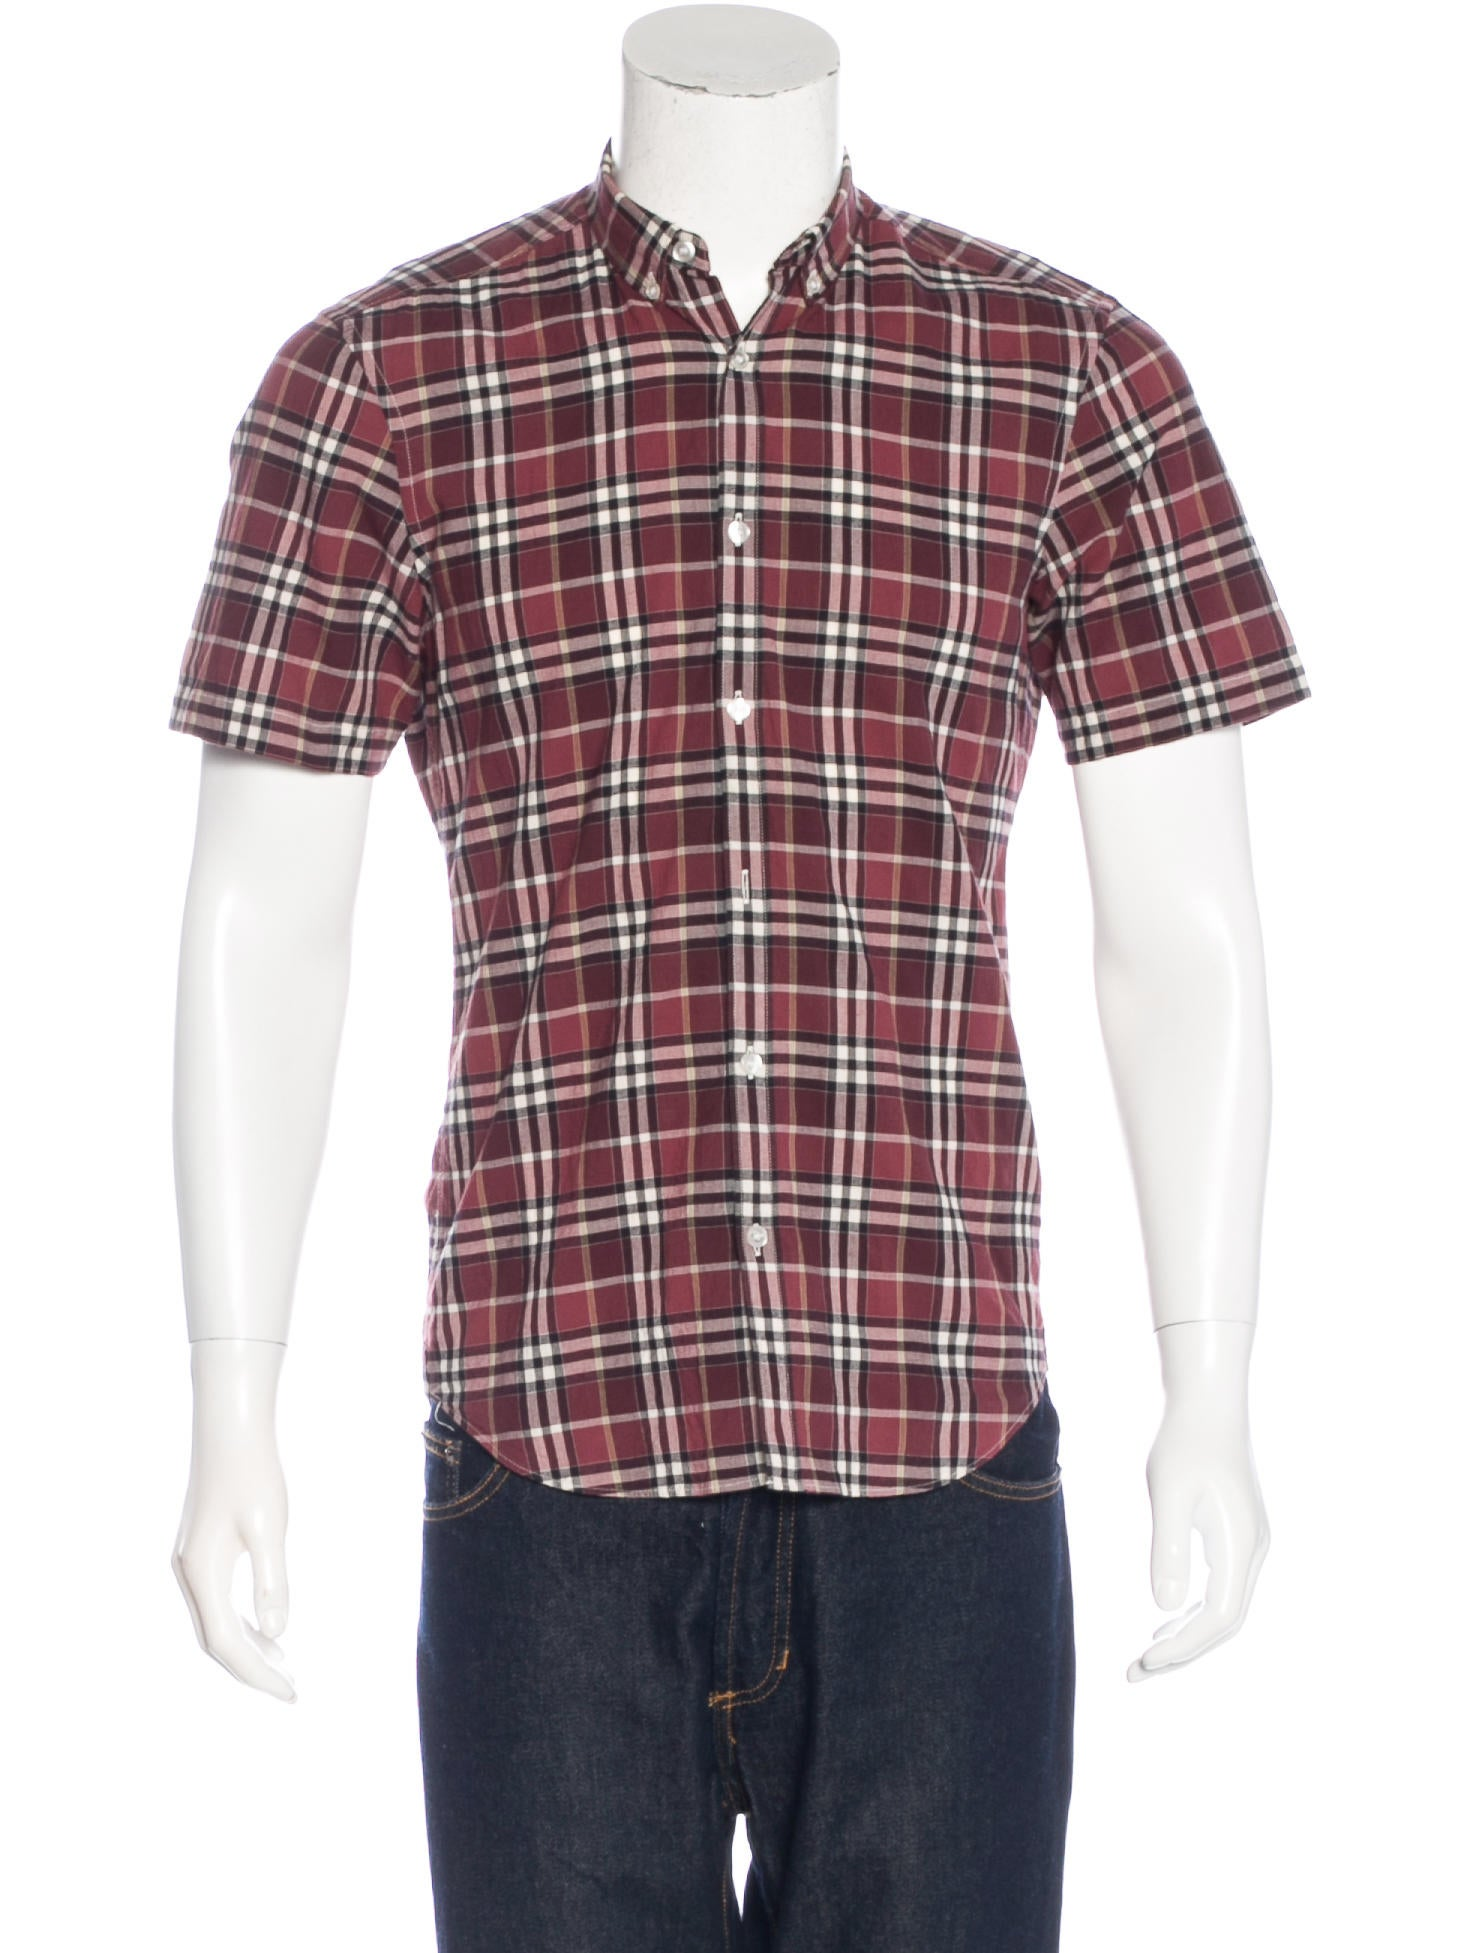 Burberry brit plaid woven shirt clothing bbr27626 for Burberry brit checked shirt